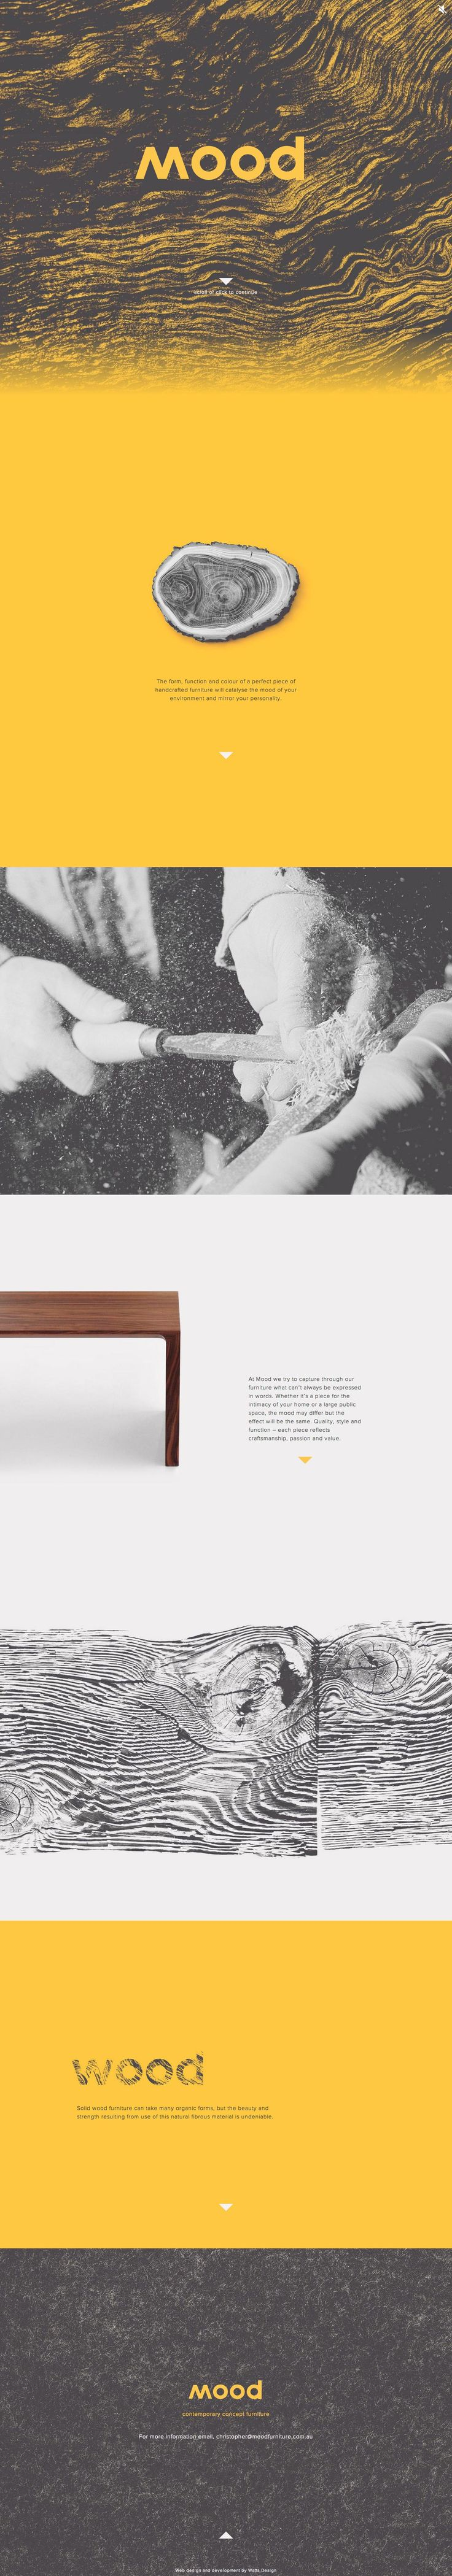 "Identity for Mood, a contemporary concept furniture brand. ""When you read the word 'mood' you see the word 'wood', your brain starts to invoke the raw texture and feeling of natural wood and the nostalgic feelings associated with it."" A clear explanation there by the people who design the brand identity for Mood, Watts Design."